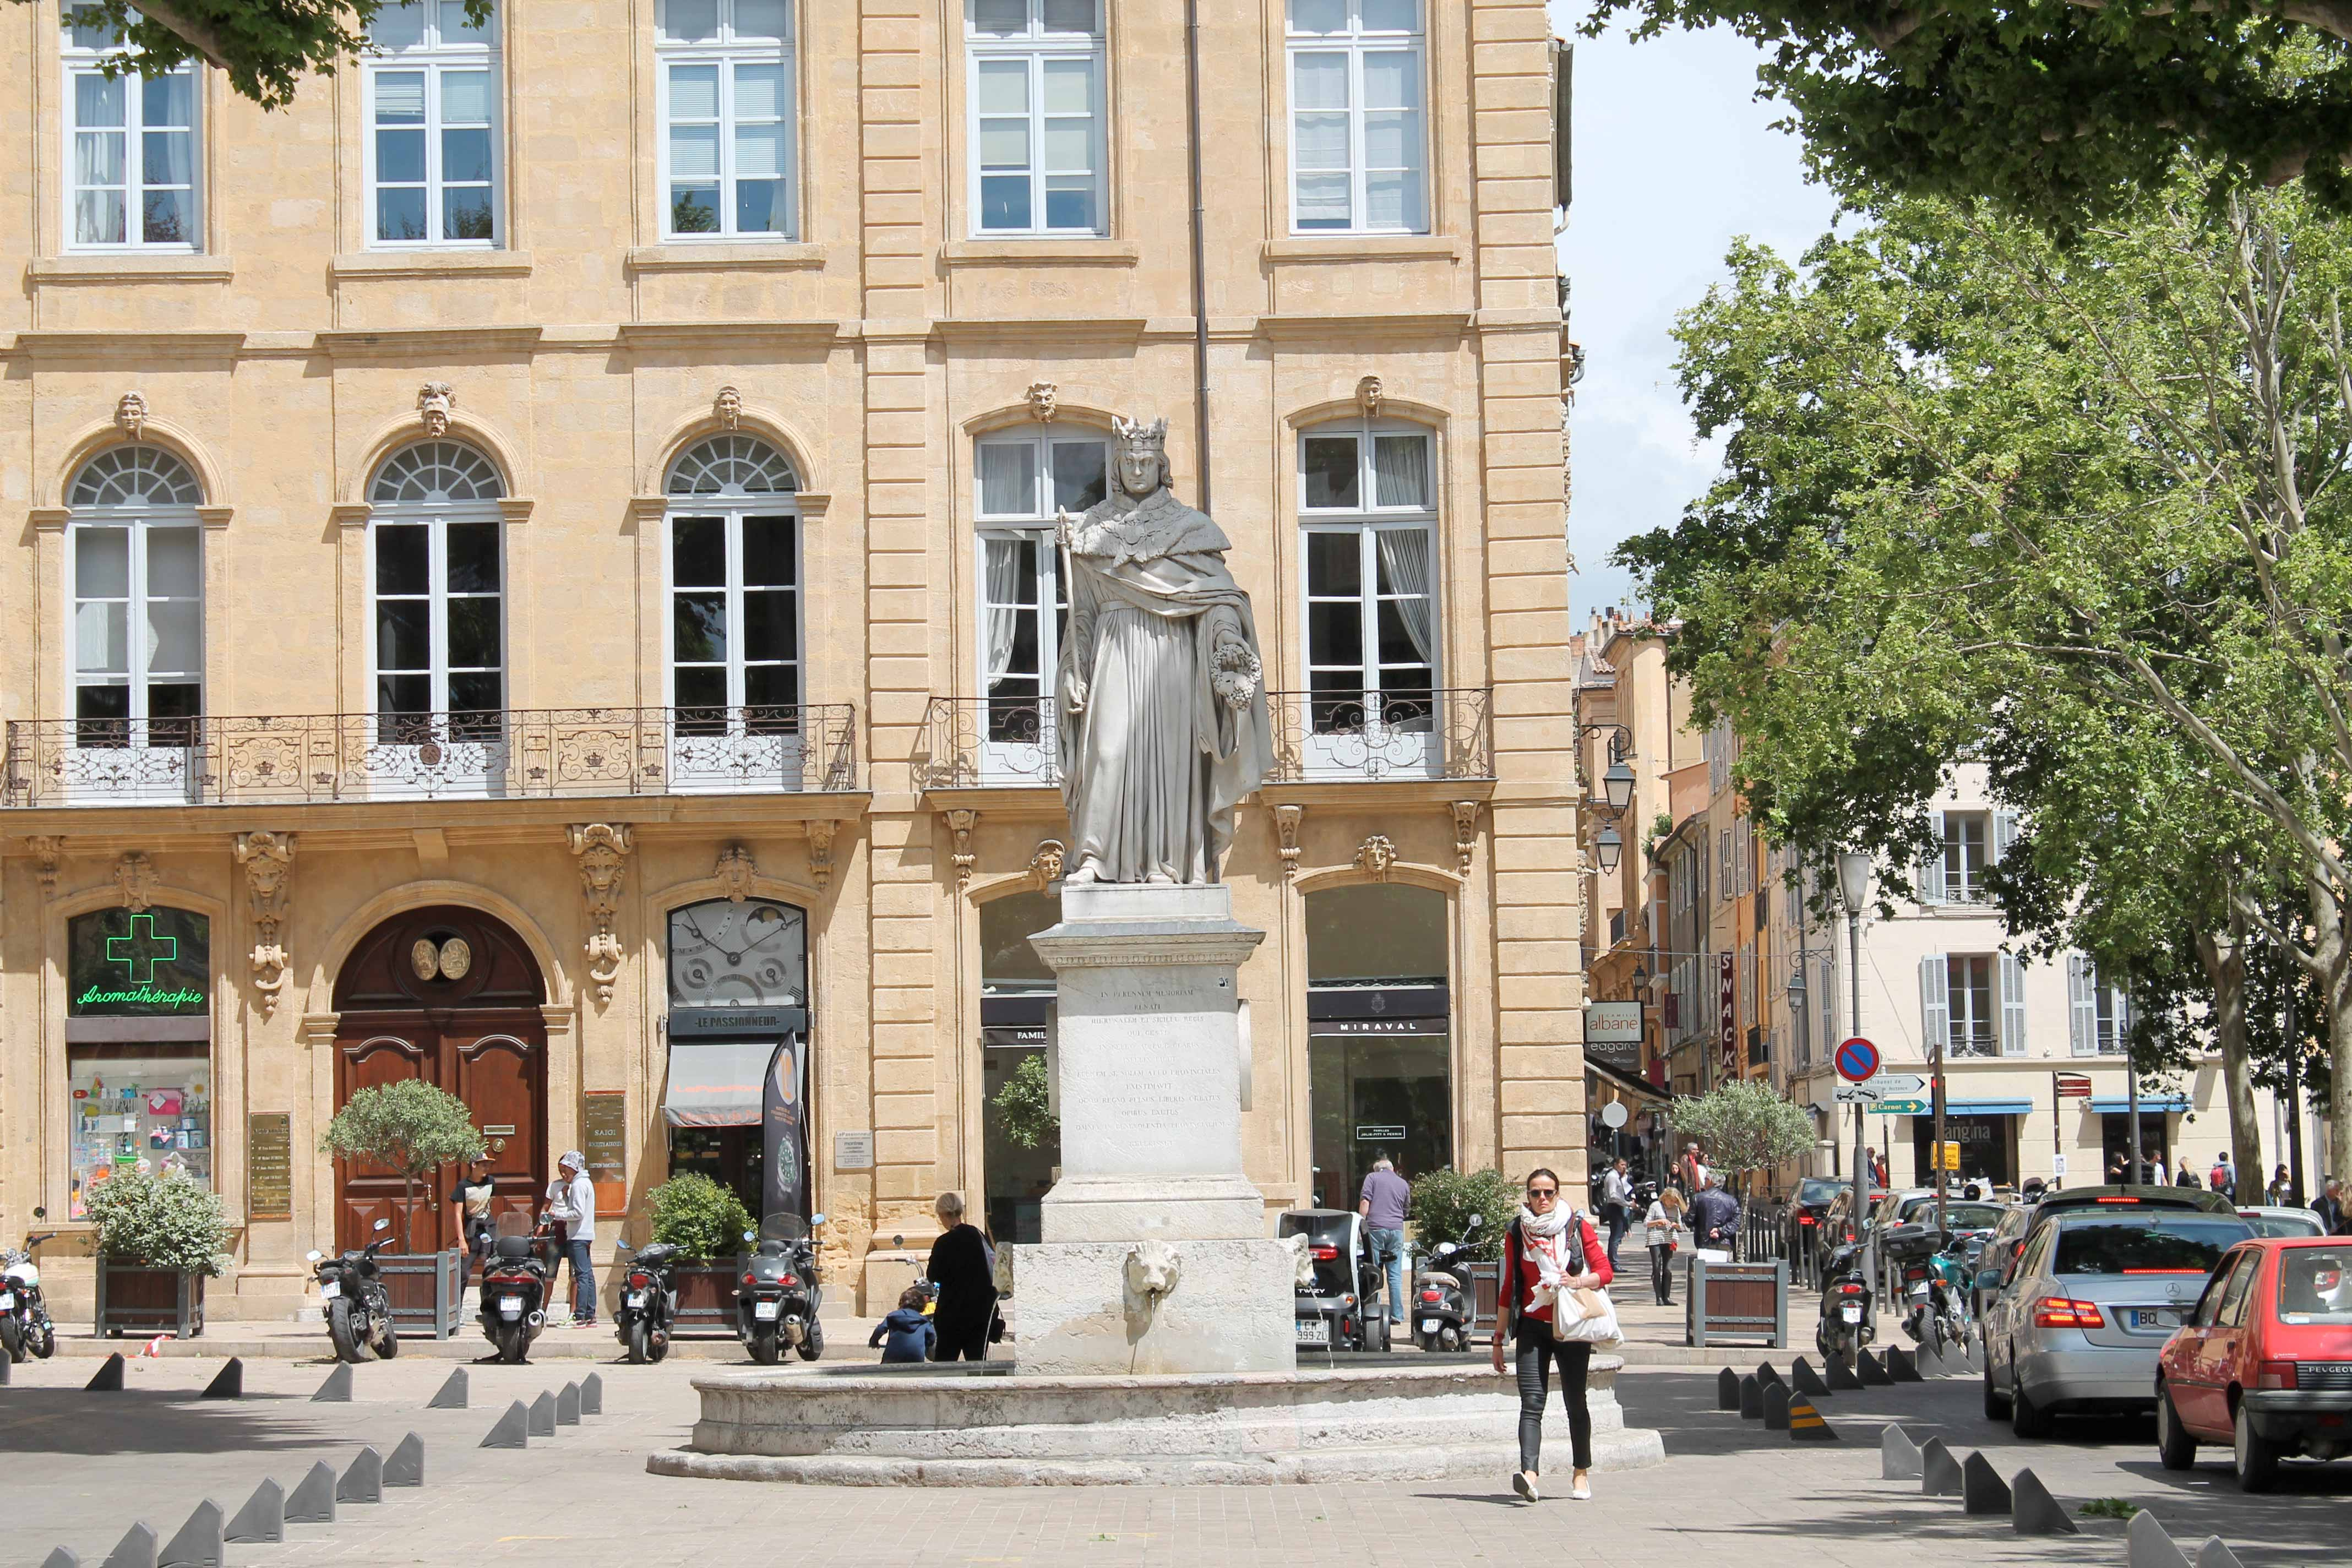 Shore excursion, Roy René statue, Aix en Provence